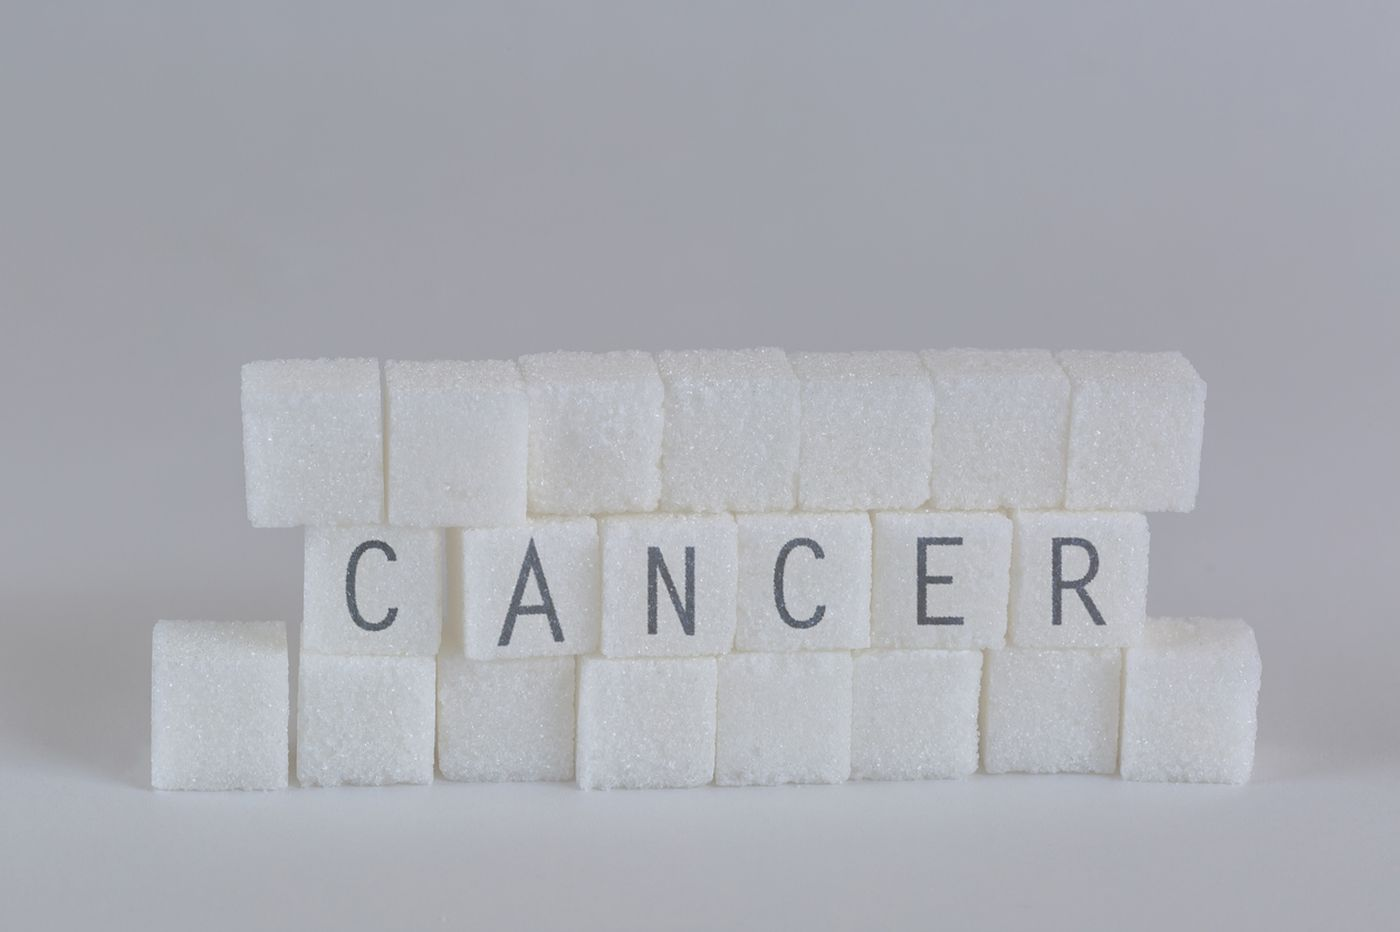 A common diabetes drug could help treat cancer, based on its links to insulin and obesity